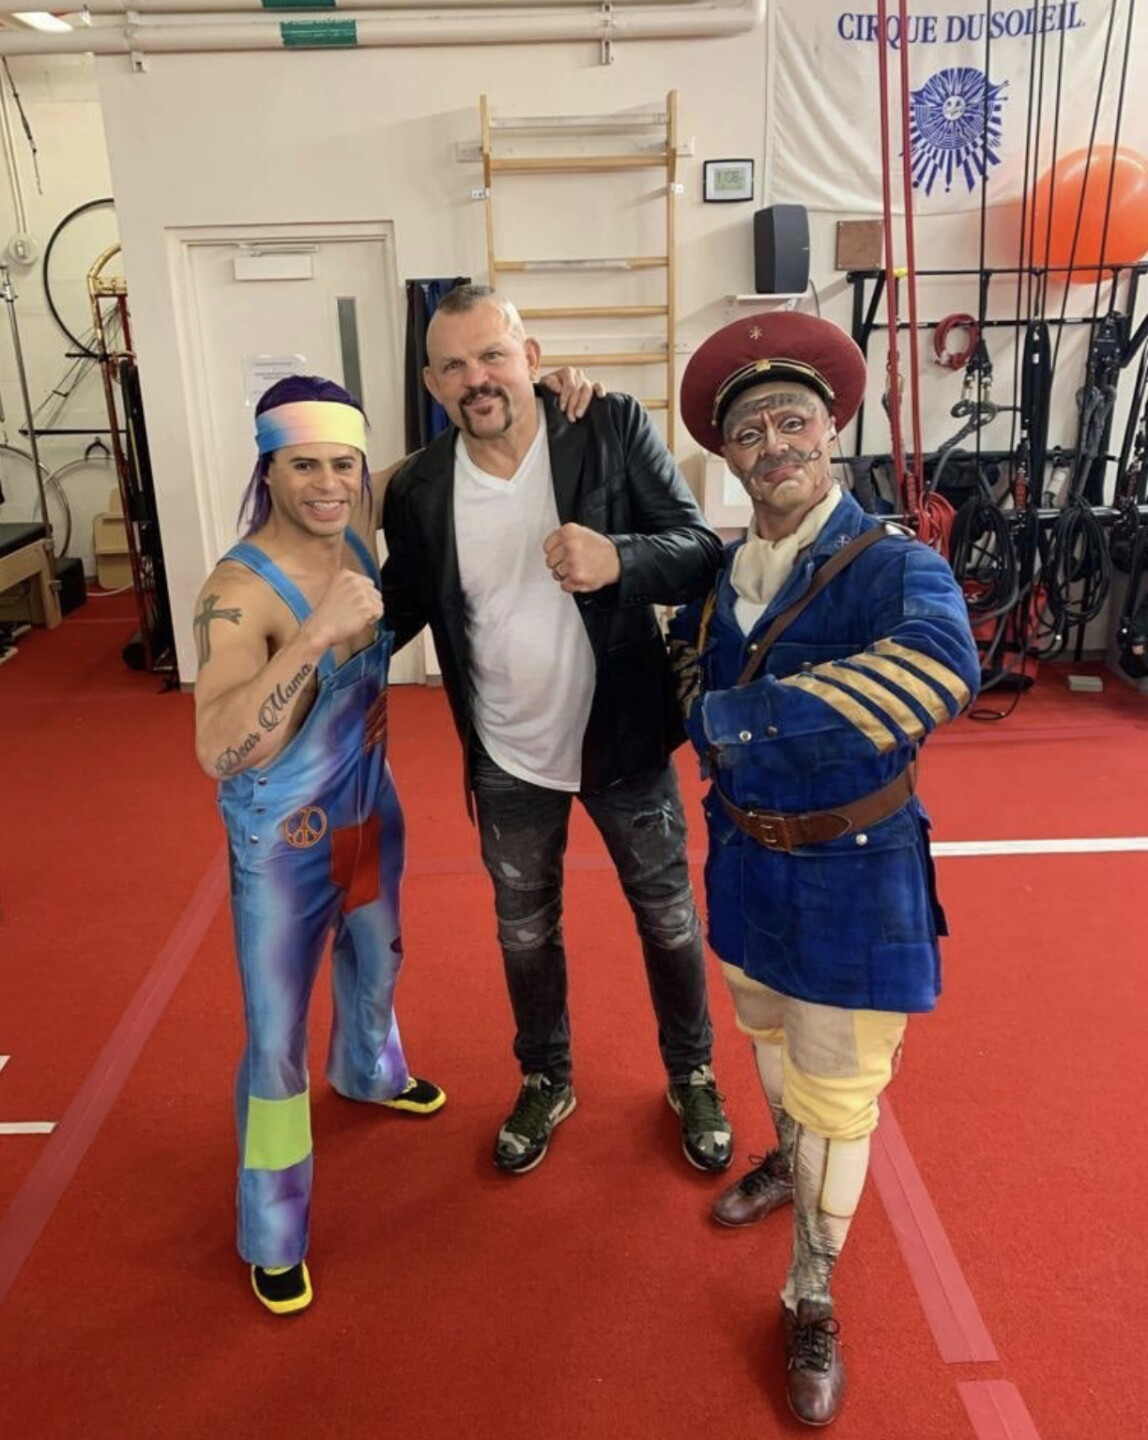 Chuck Liddell Poses with the Characters of LOVE by Cirque du Soleil, Jan. 17, 2020.jpg